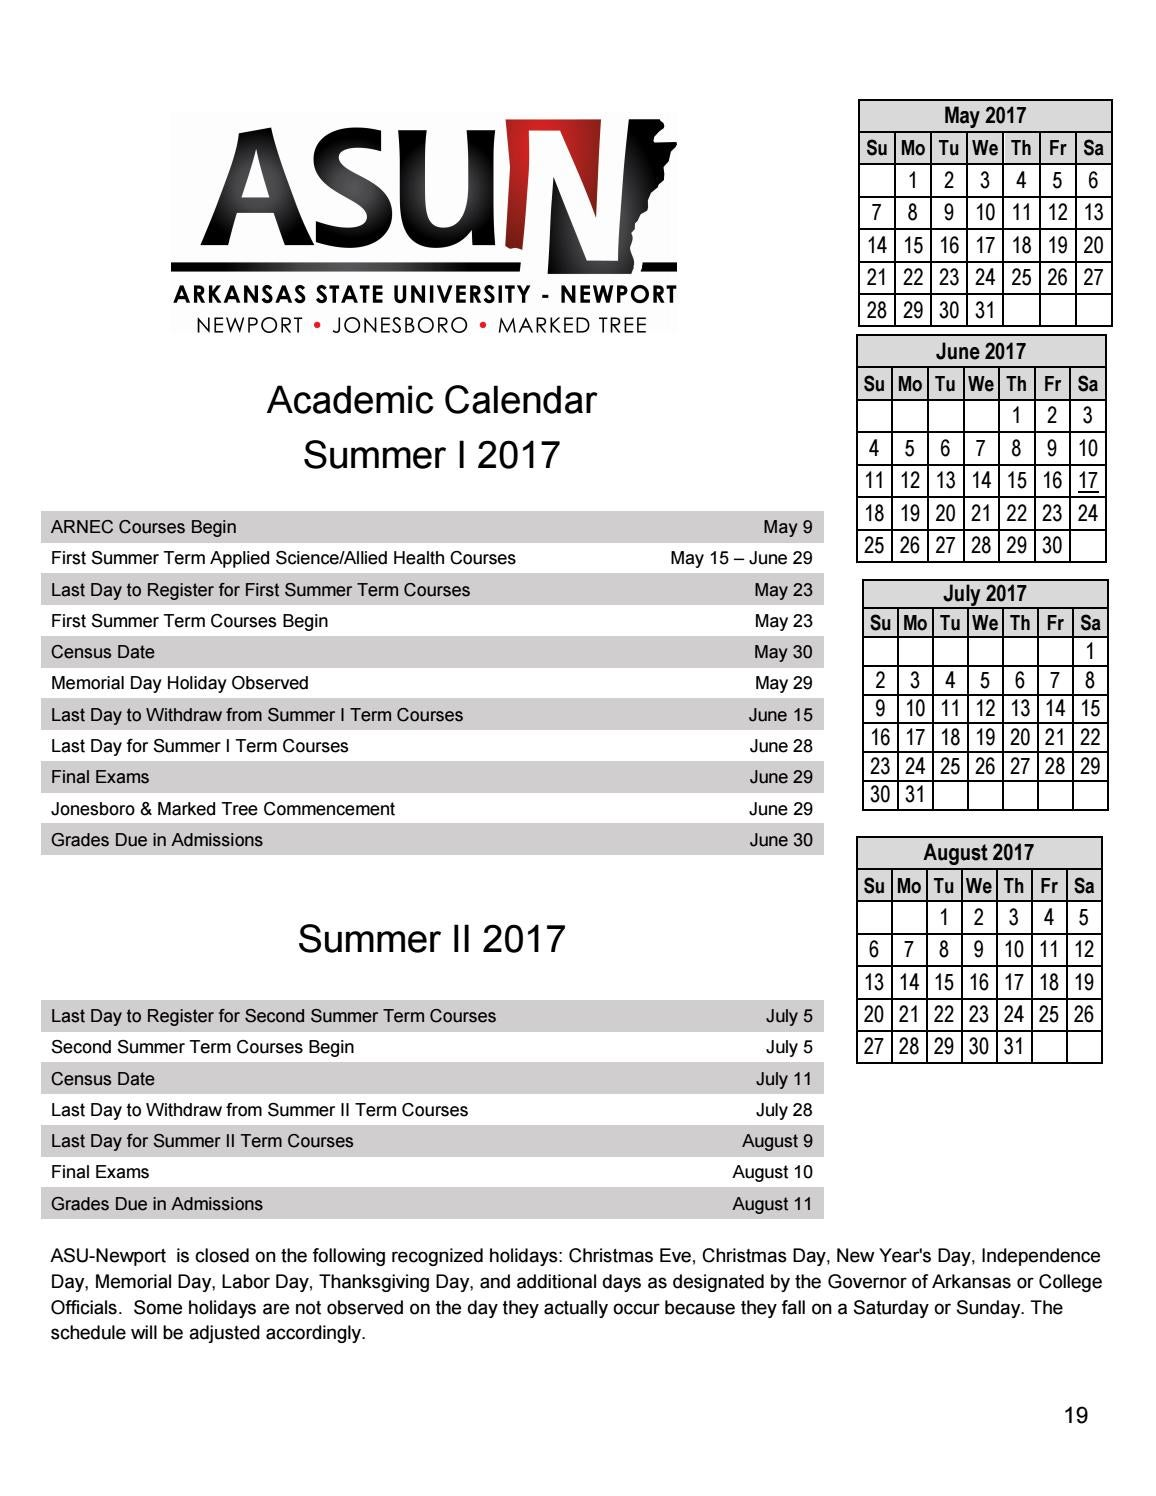 Asu Newport Catalog 2016 2017 By Asunewport Issuu